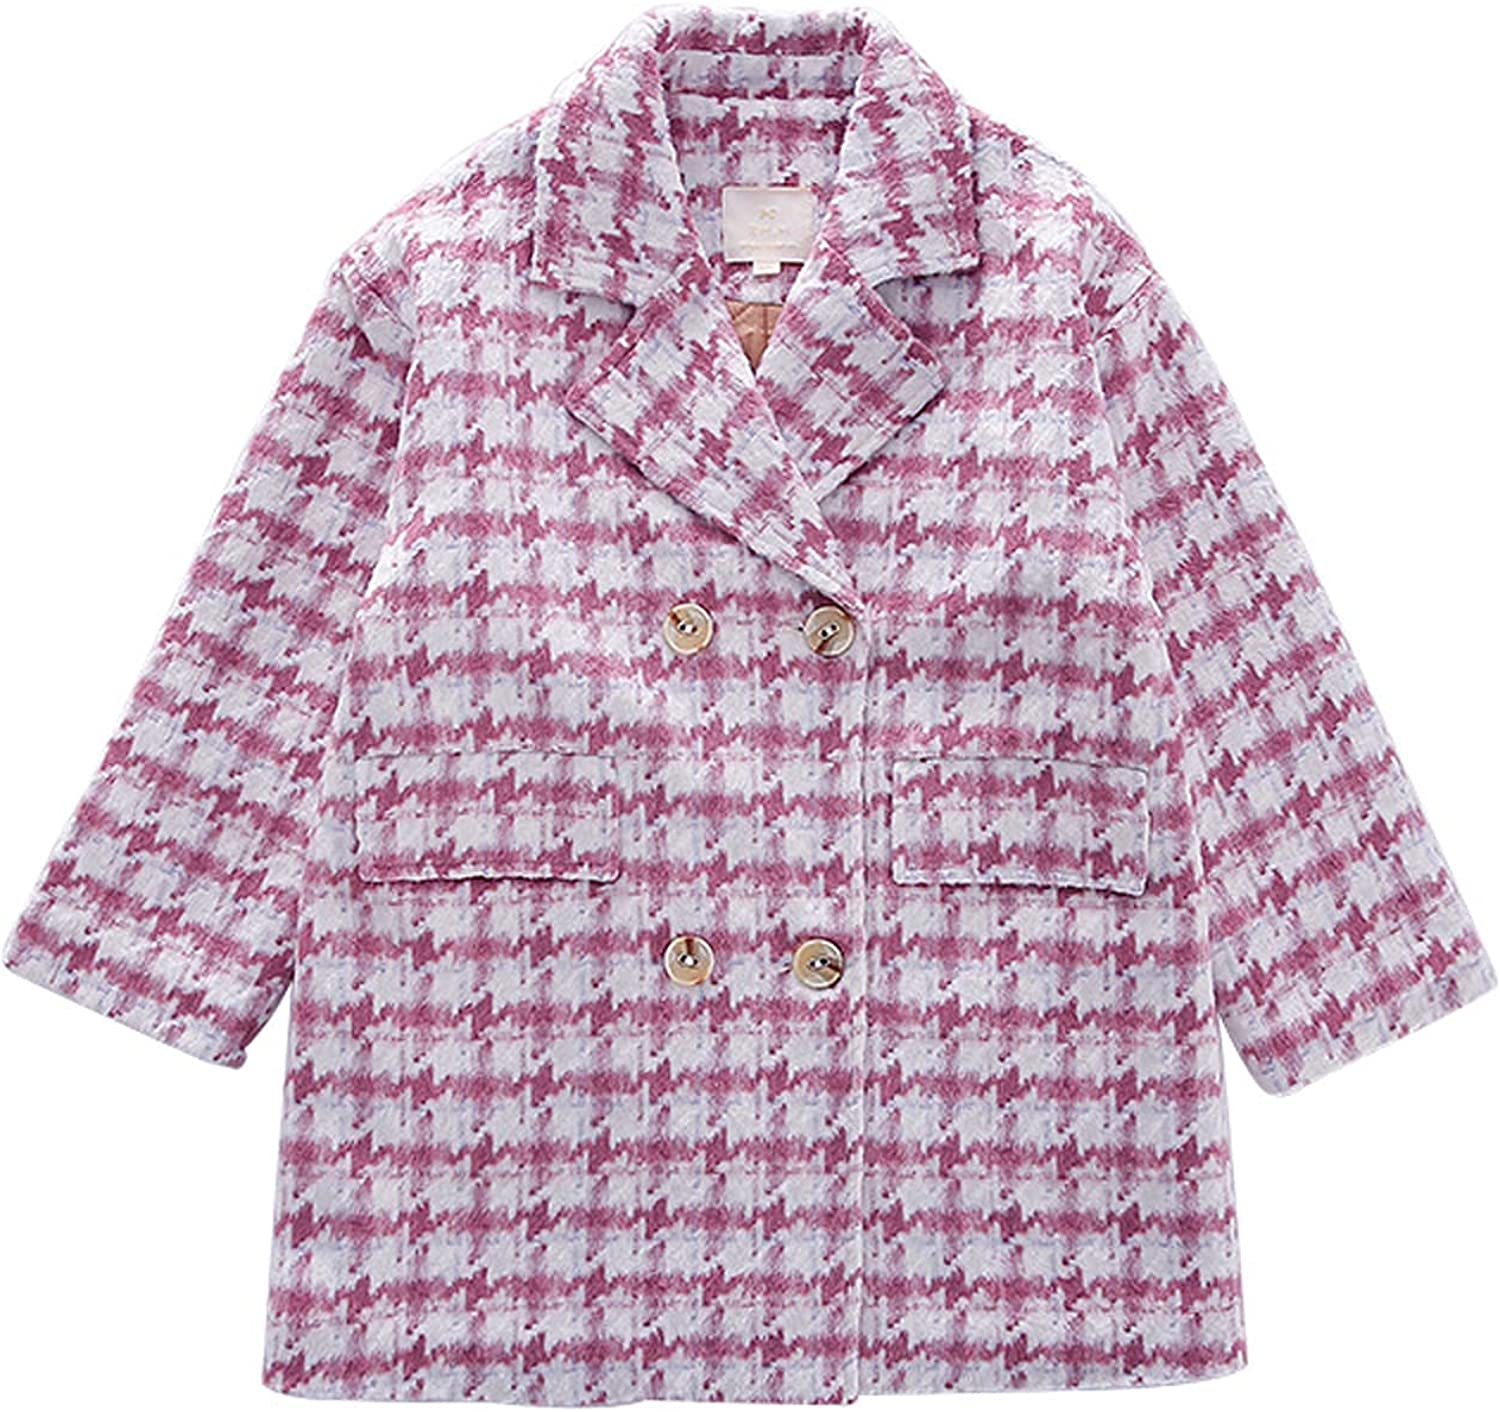 Girls Kids Plaid Checked Wool Coat Winter Single Breasted Button Jacket Trench Coat